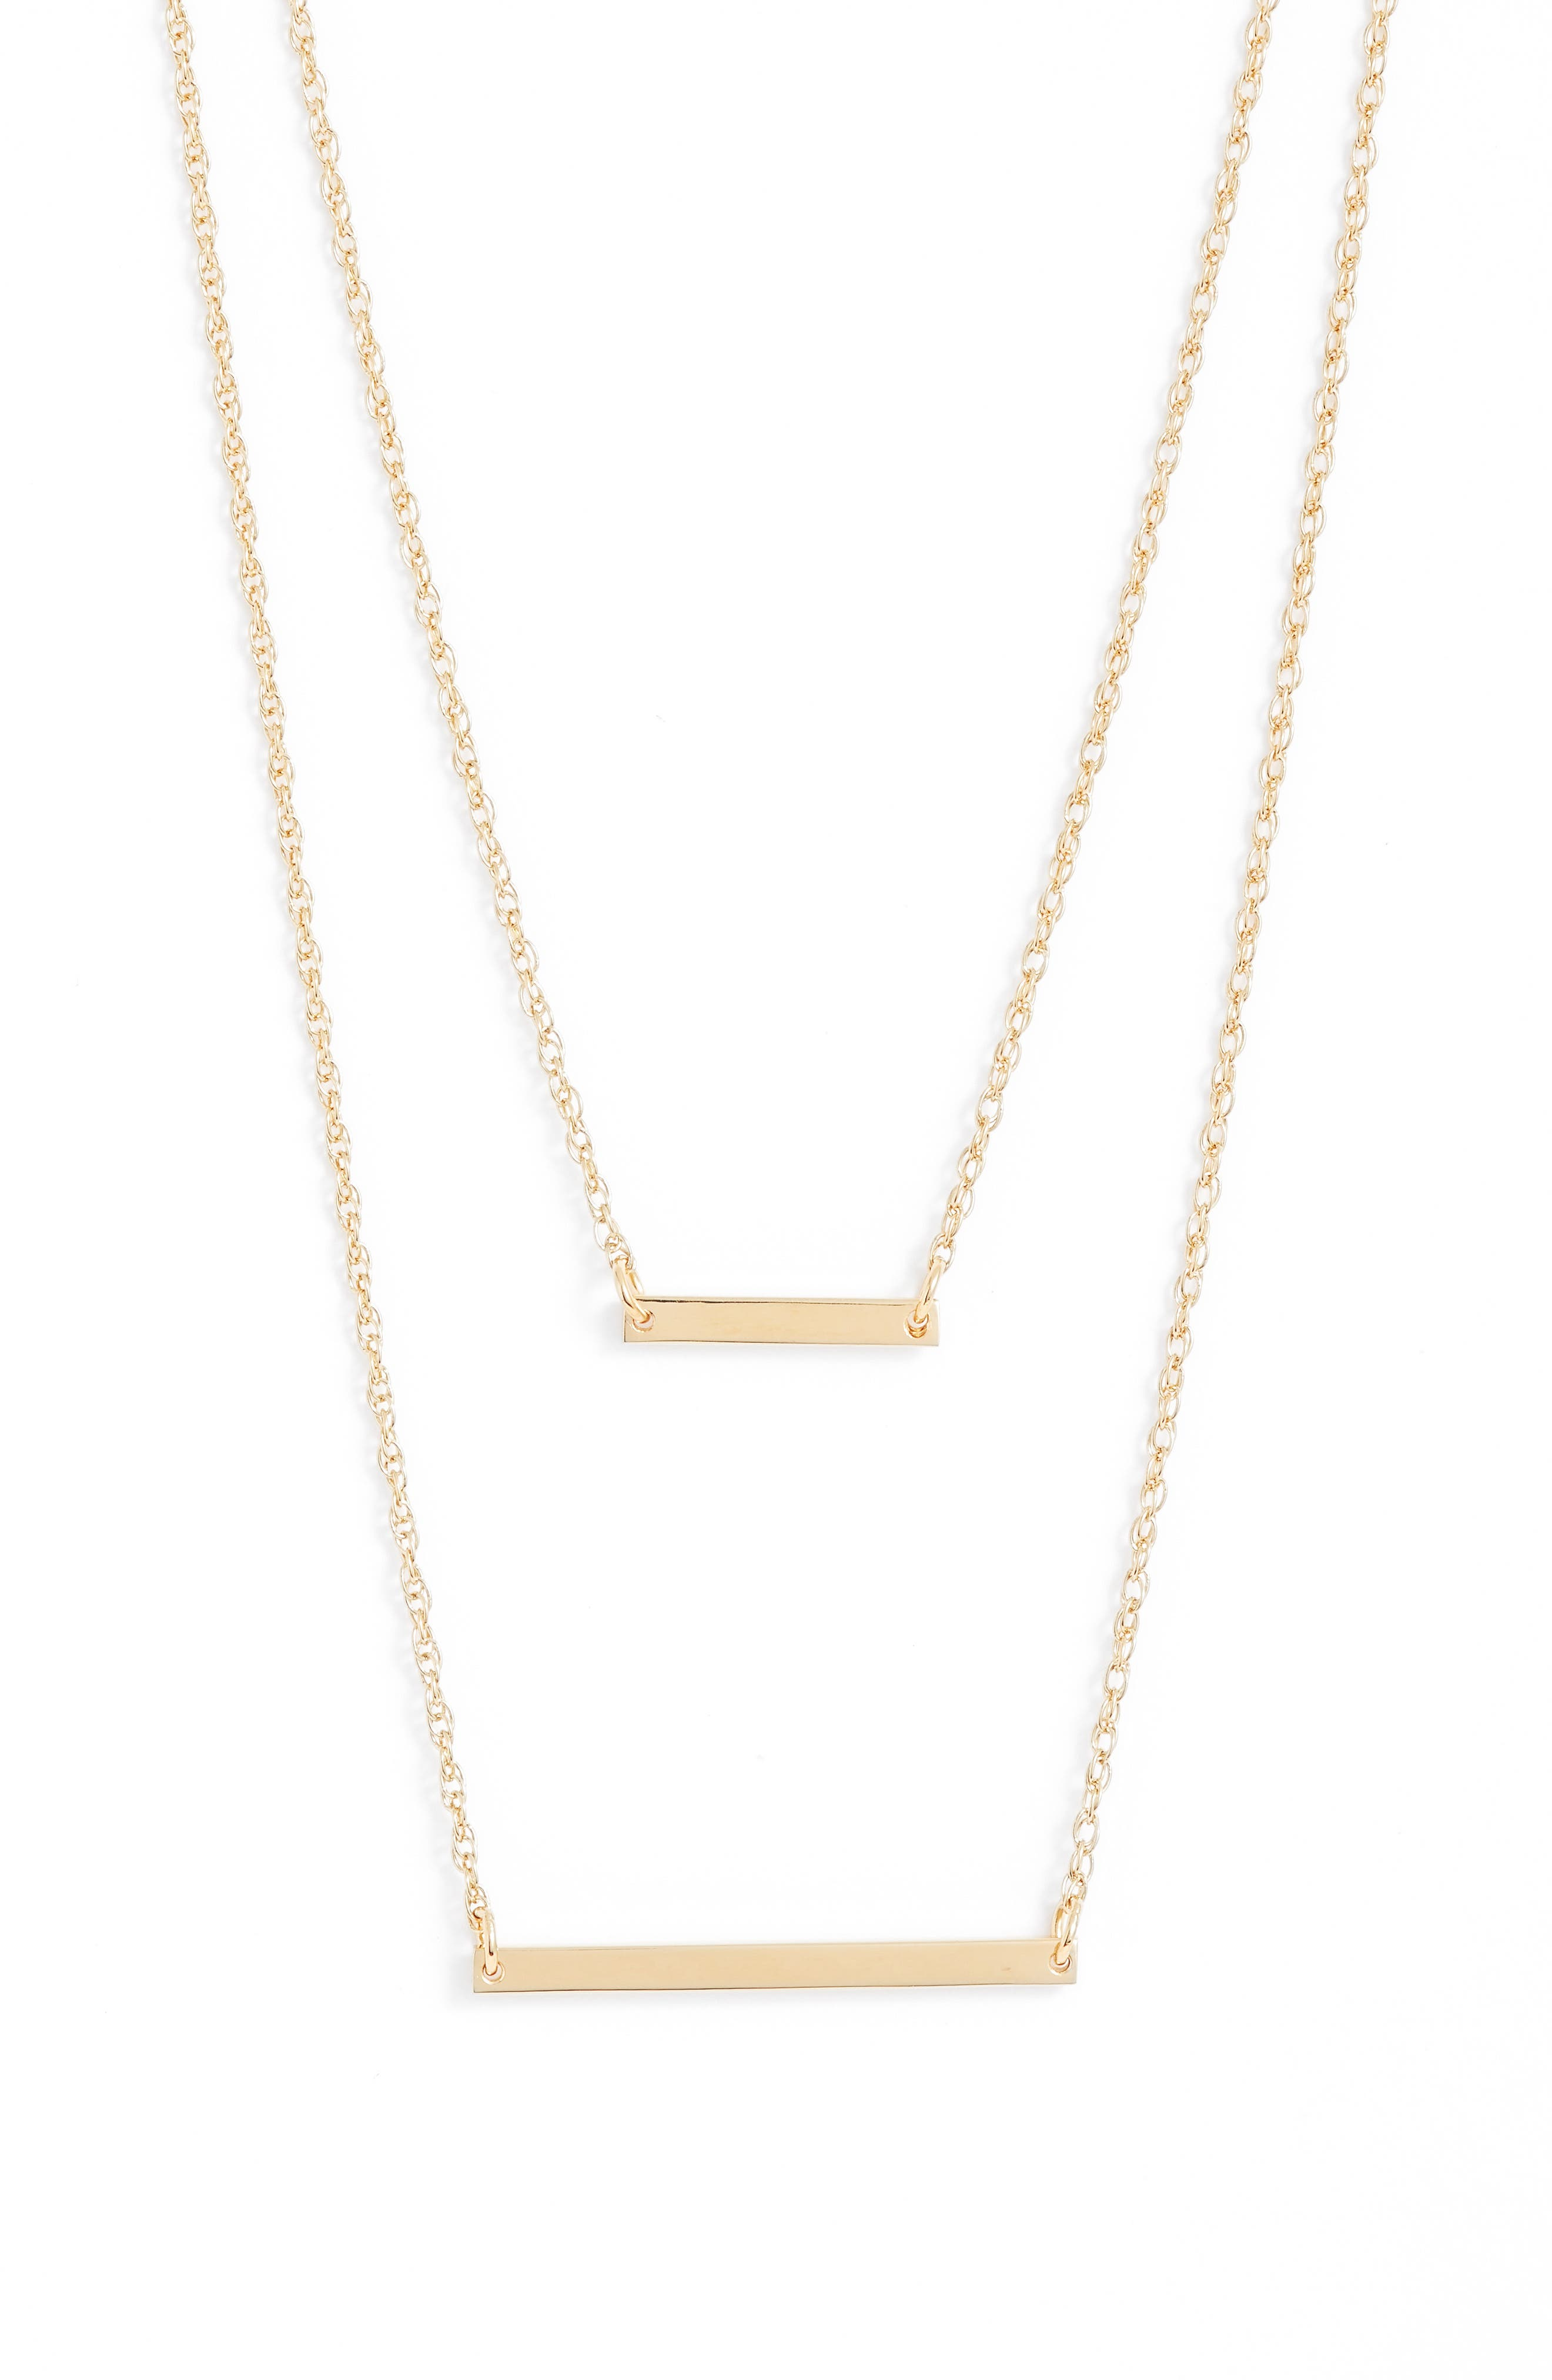 Cynthia Layered Pendant Necklace,                         Main,                         color, GOLD VERMEIL